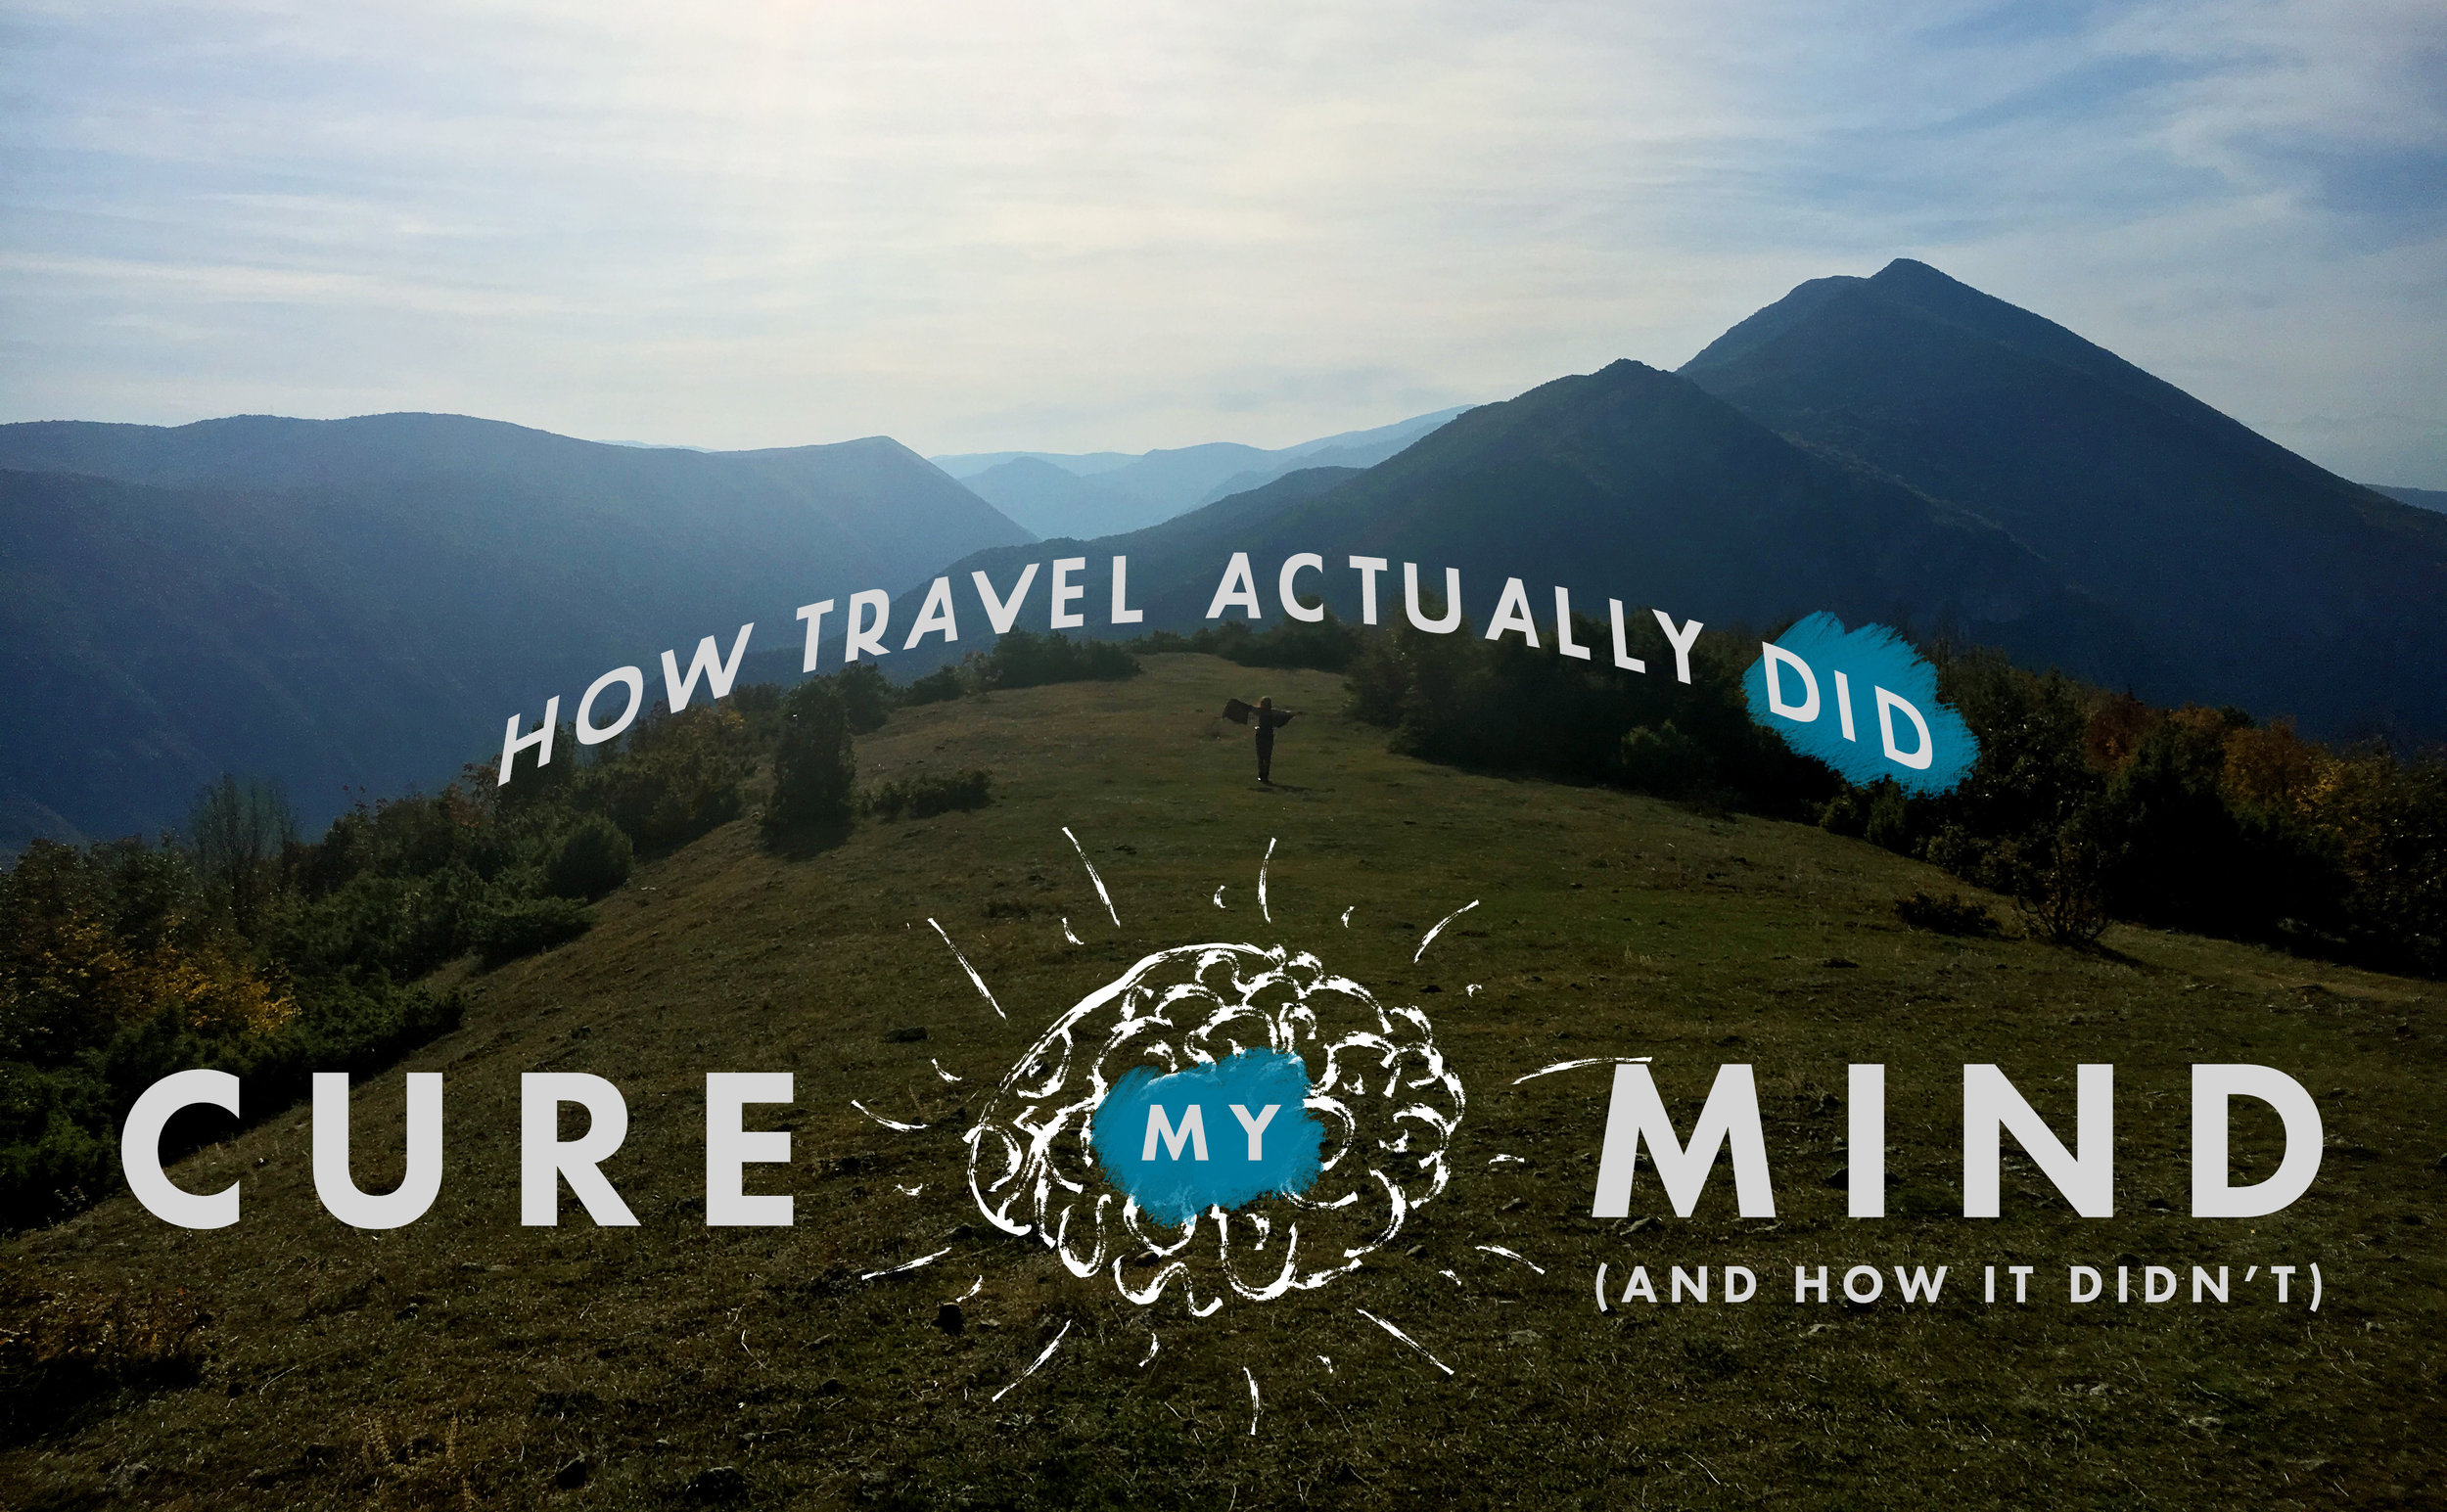 RELATED: How Travel Actually DID Cure My Mind (and How it Didn't)